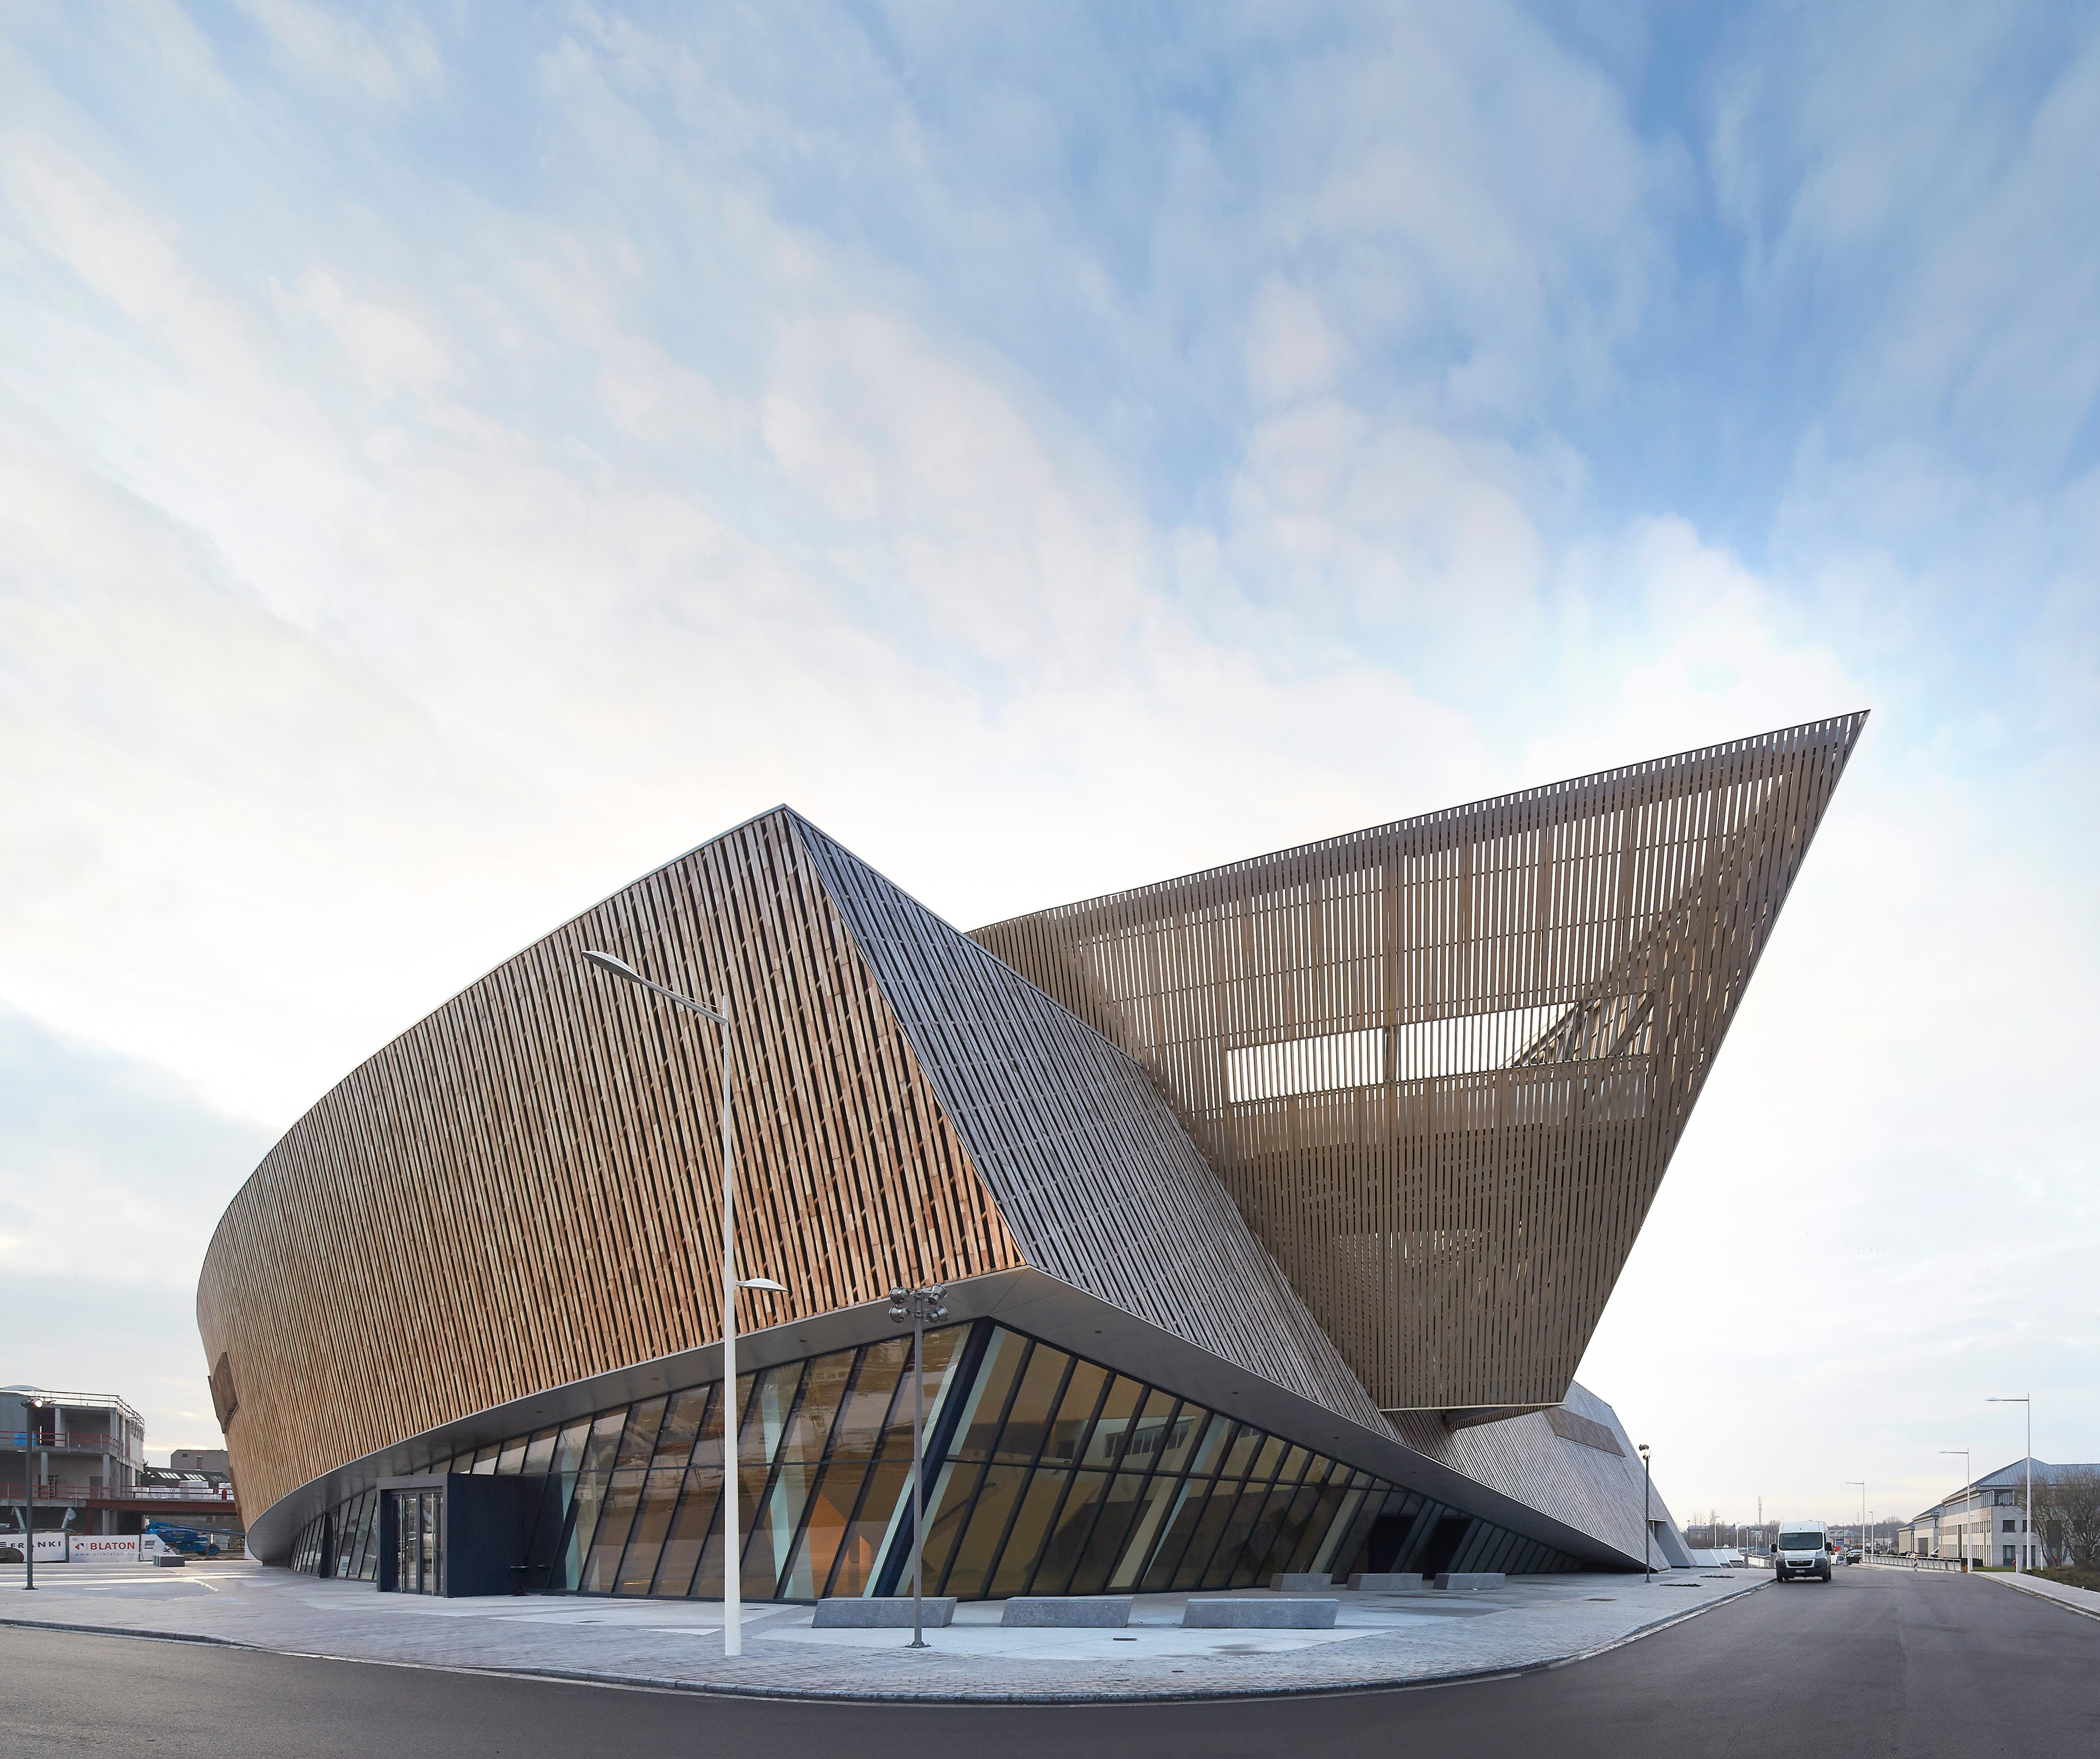 Mons International Congress Xperience (MICX) | Studio Libeskind, H2a